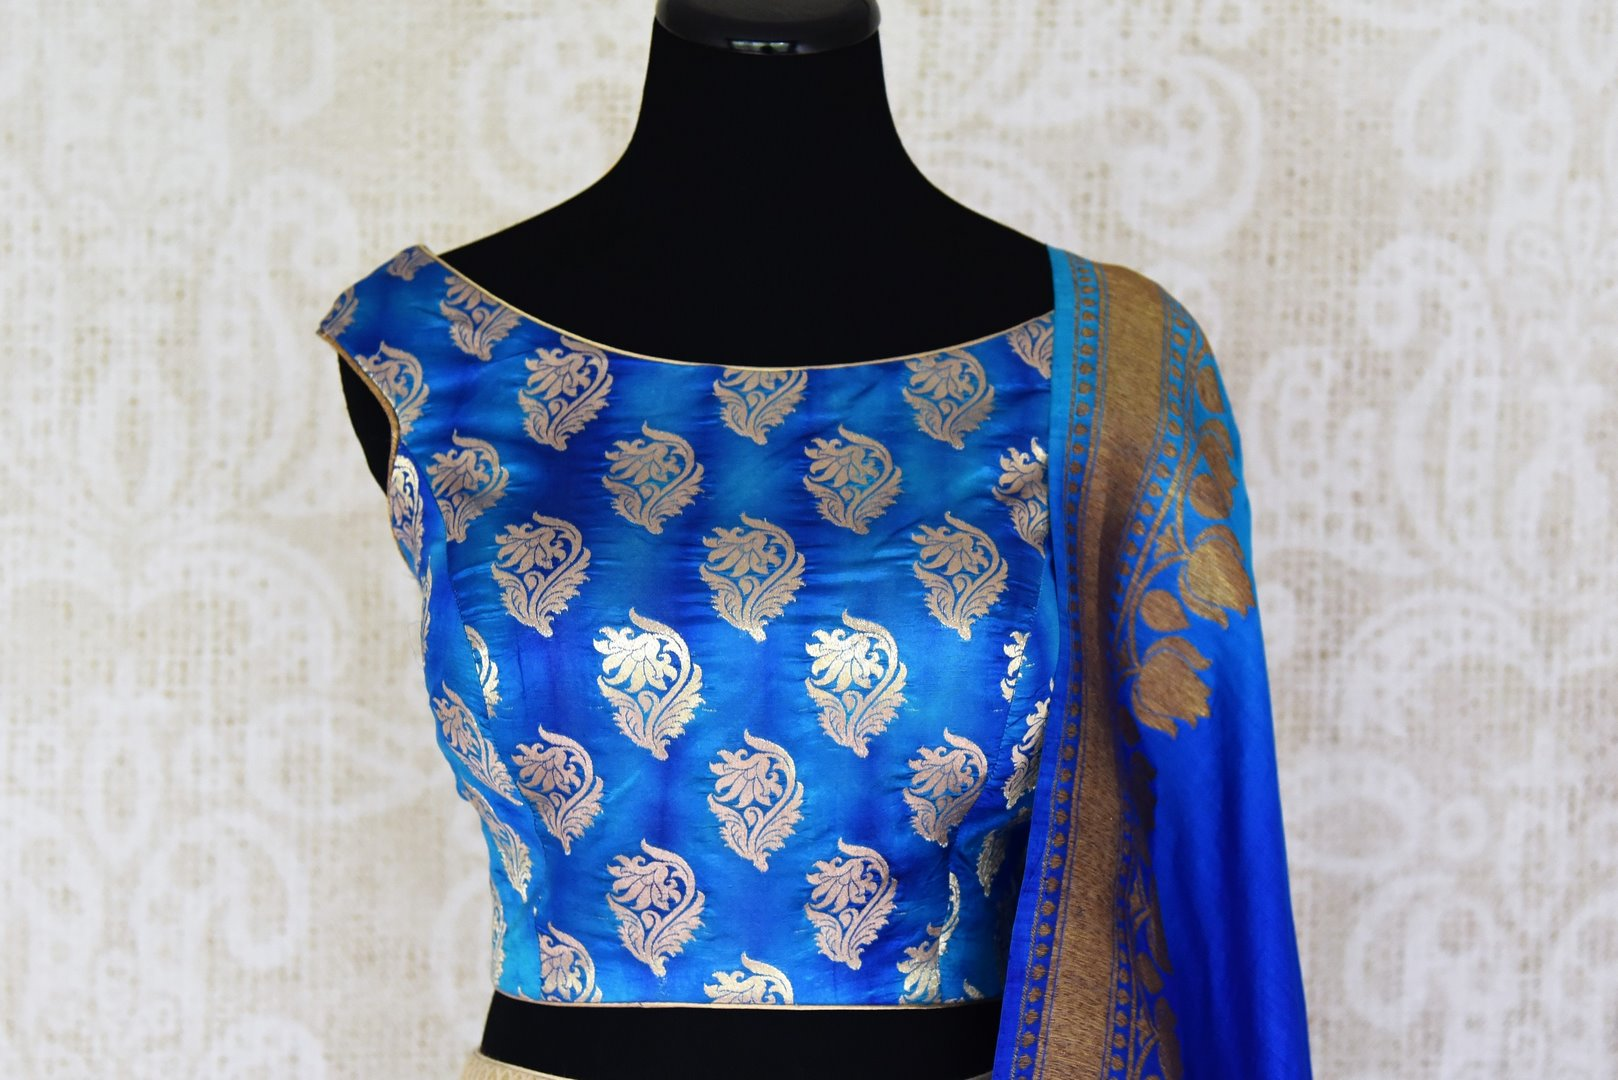 Buy gold Banarasi silk lehenga with blue sleeveless choli online in USA and dupatta. Find a range of stunning designer lehengas in USA at Pure Elegance Indian clothing store. Elevate your traditional style with a range of designer sarees, Indian clothing, and much more also available at our online store.-blouse front